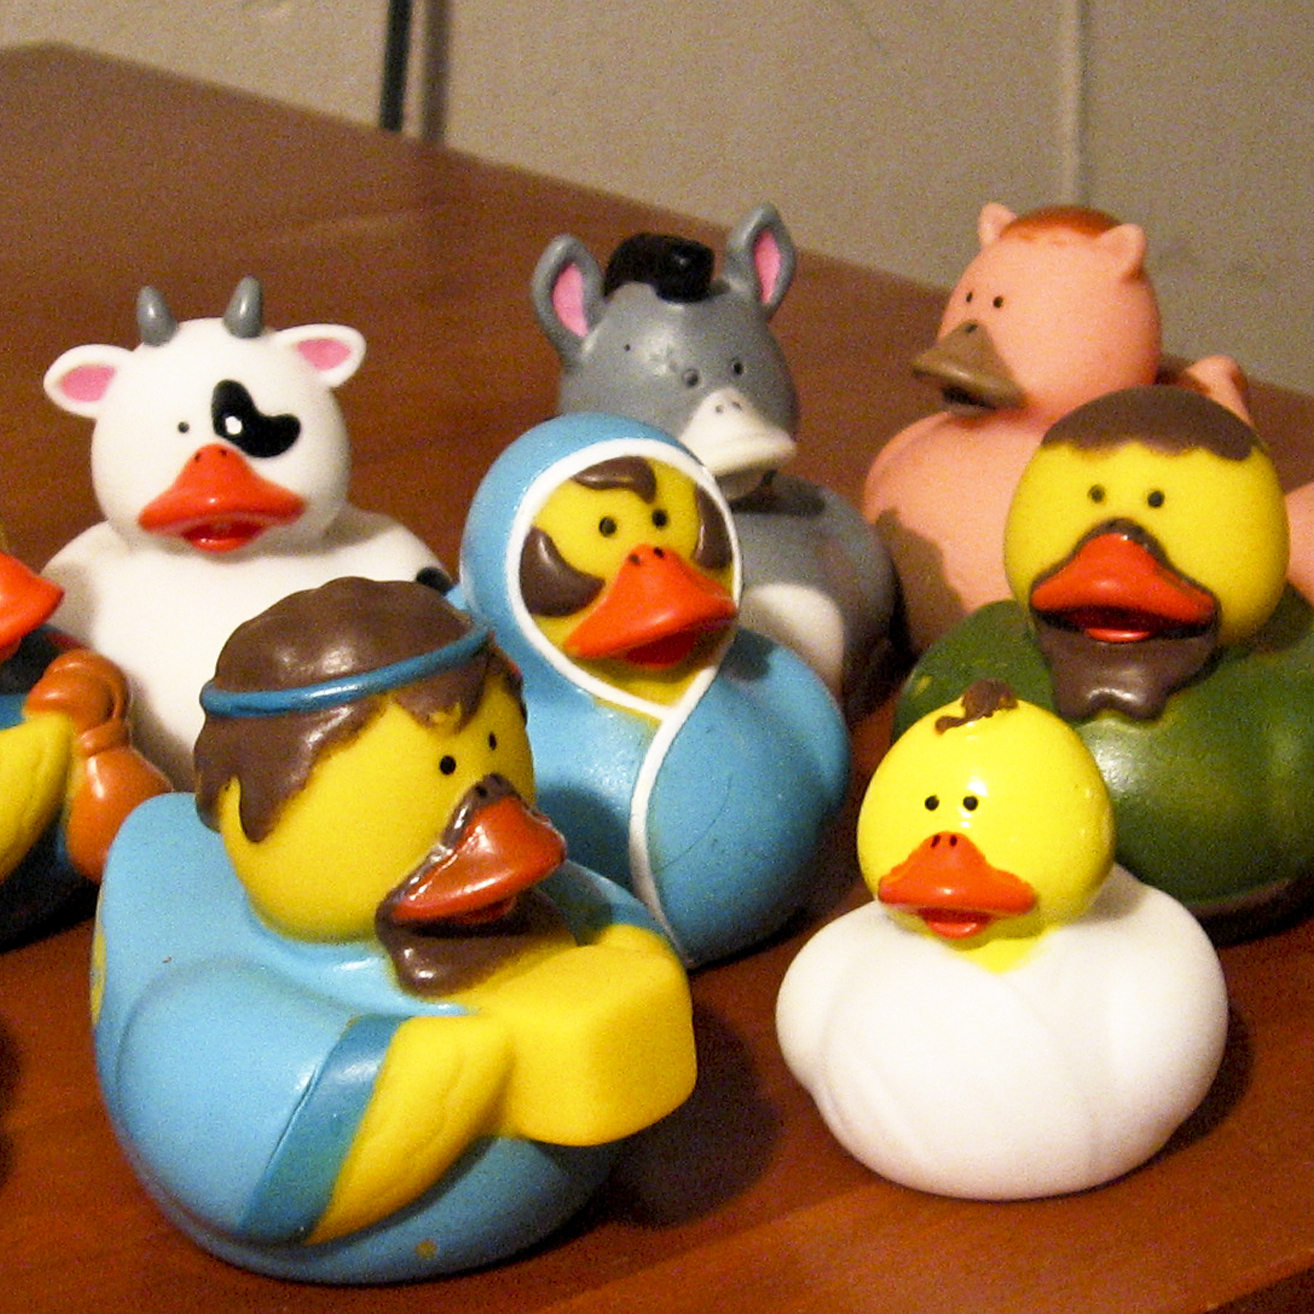 Margo Dixon's collection ranges from the traditional to the fun -- this is a Nativity set comprising rubber ducks. Some Nativity collectors prefer only sets that use humans to depict the characters, but Dixon appreciates the wide variety of interpretations of the Nativity.